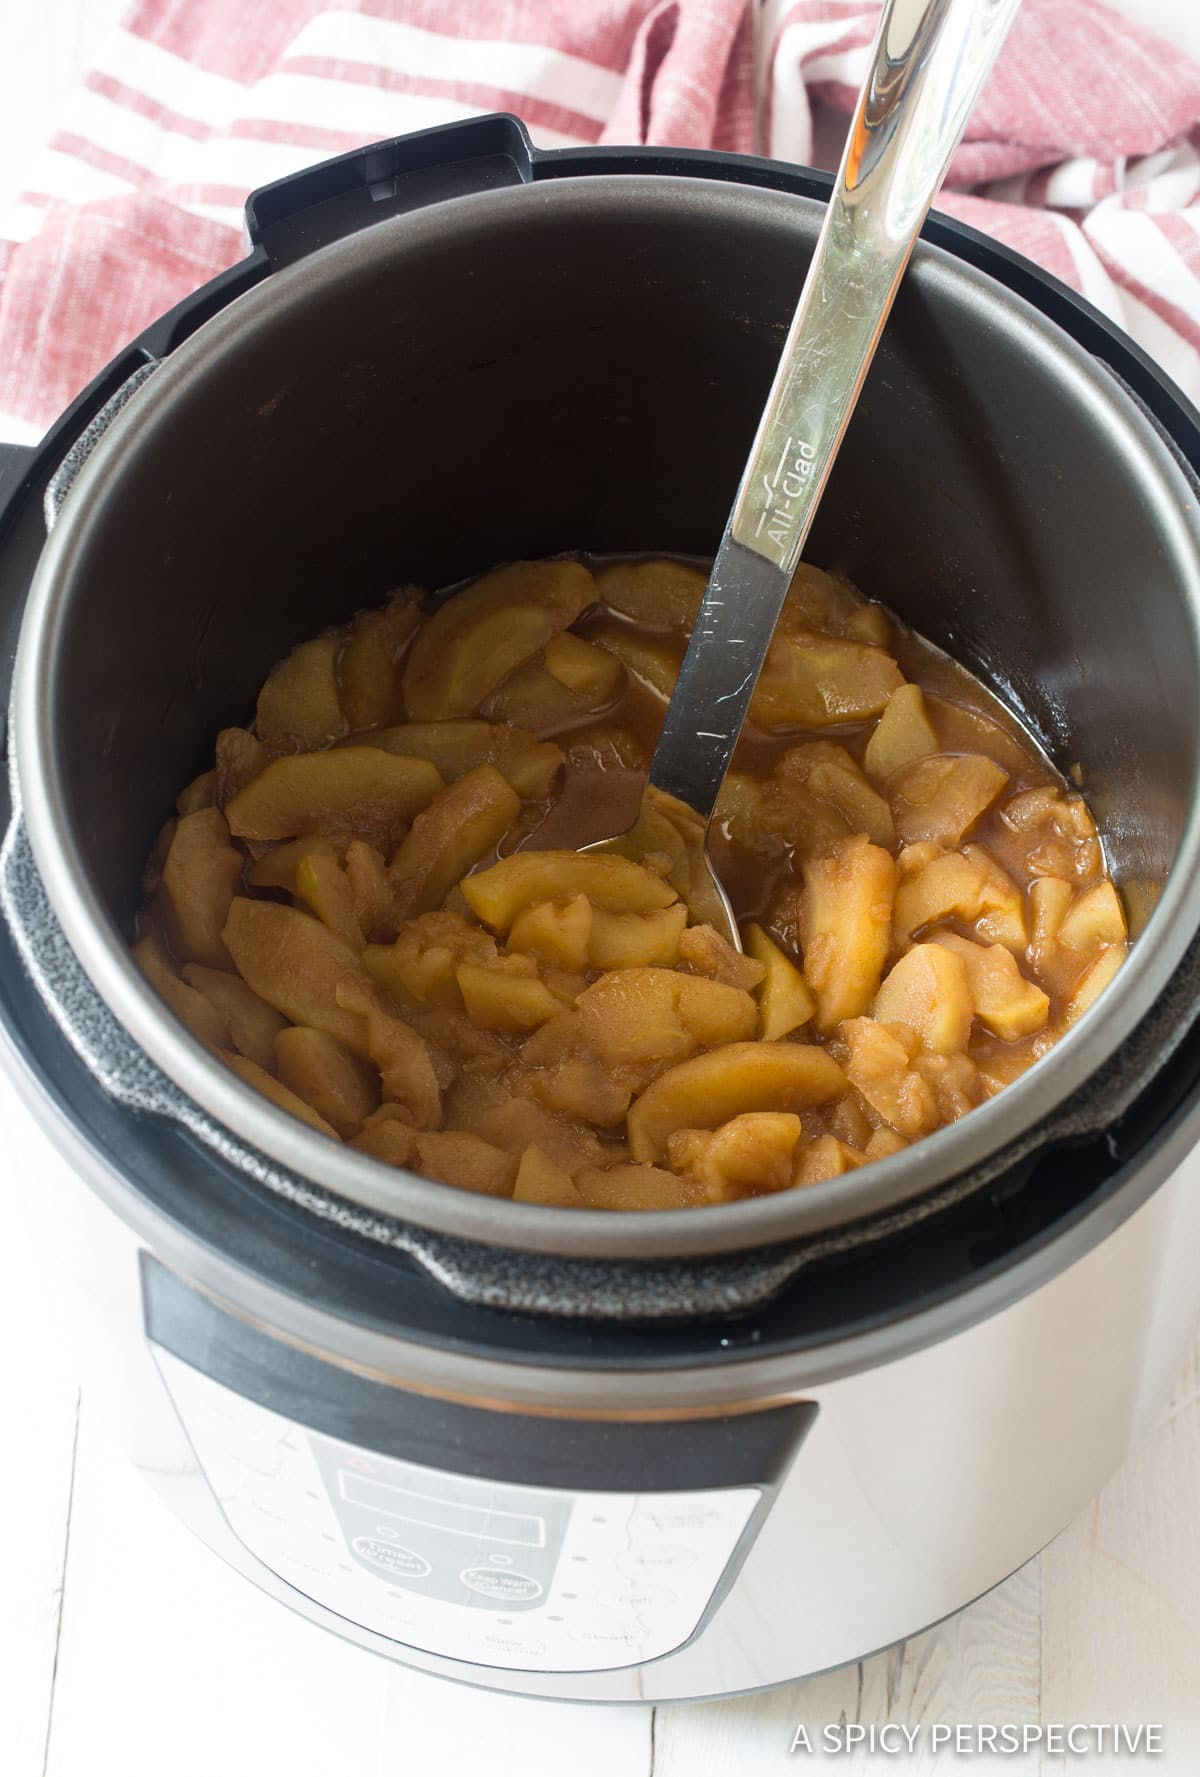 Simple Pressure Cooker Spiced Apples Recipe #ASpicyPerspective